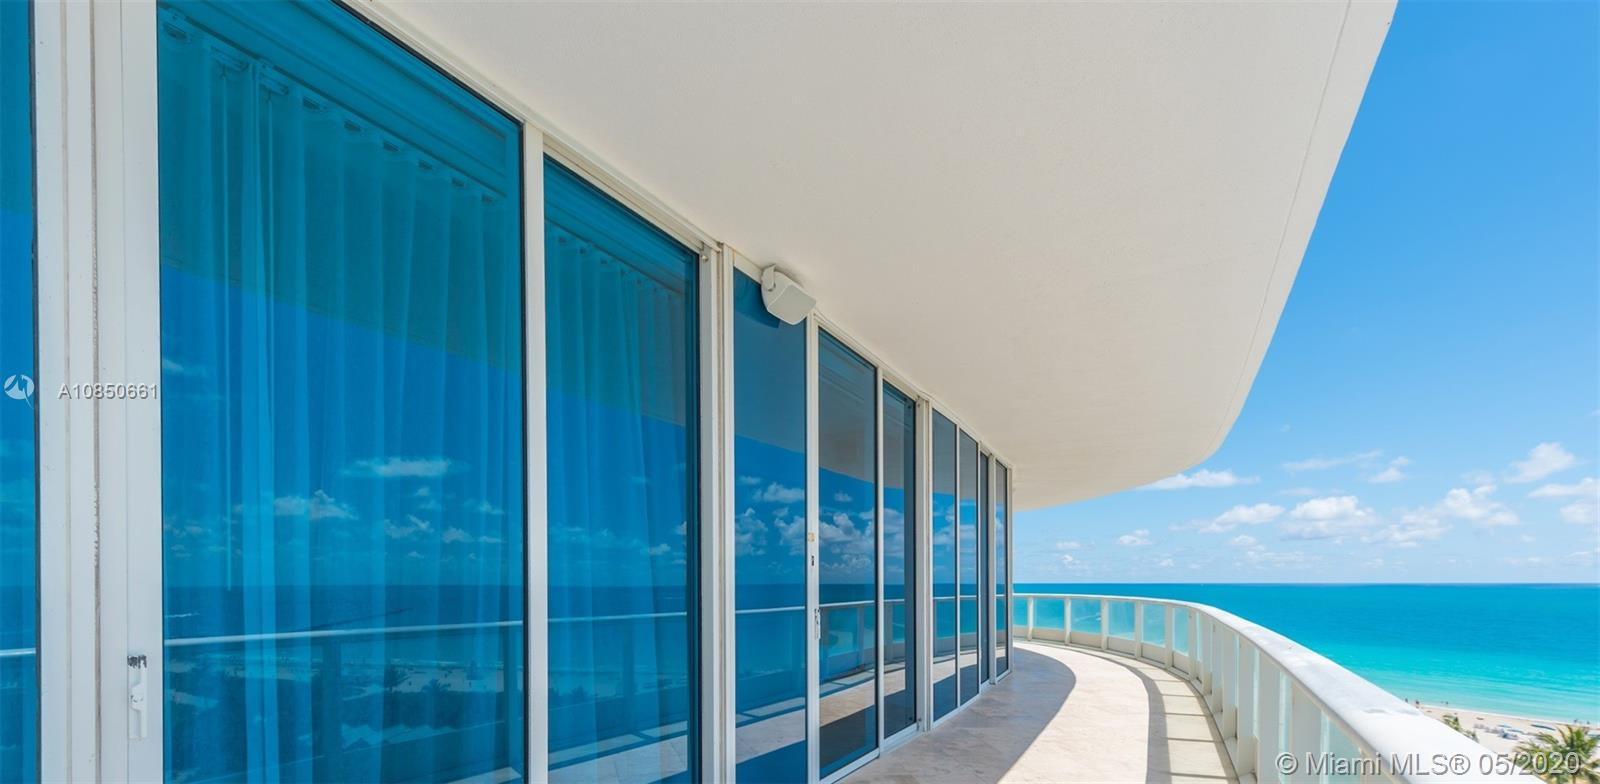 100 Pointe dr-1006 miami-beach-fl-33139-a10850661-Pic10